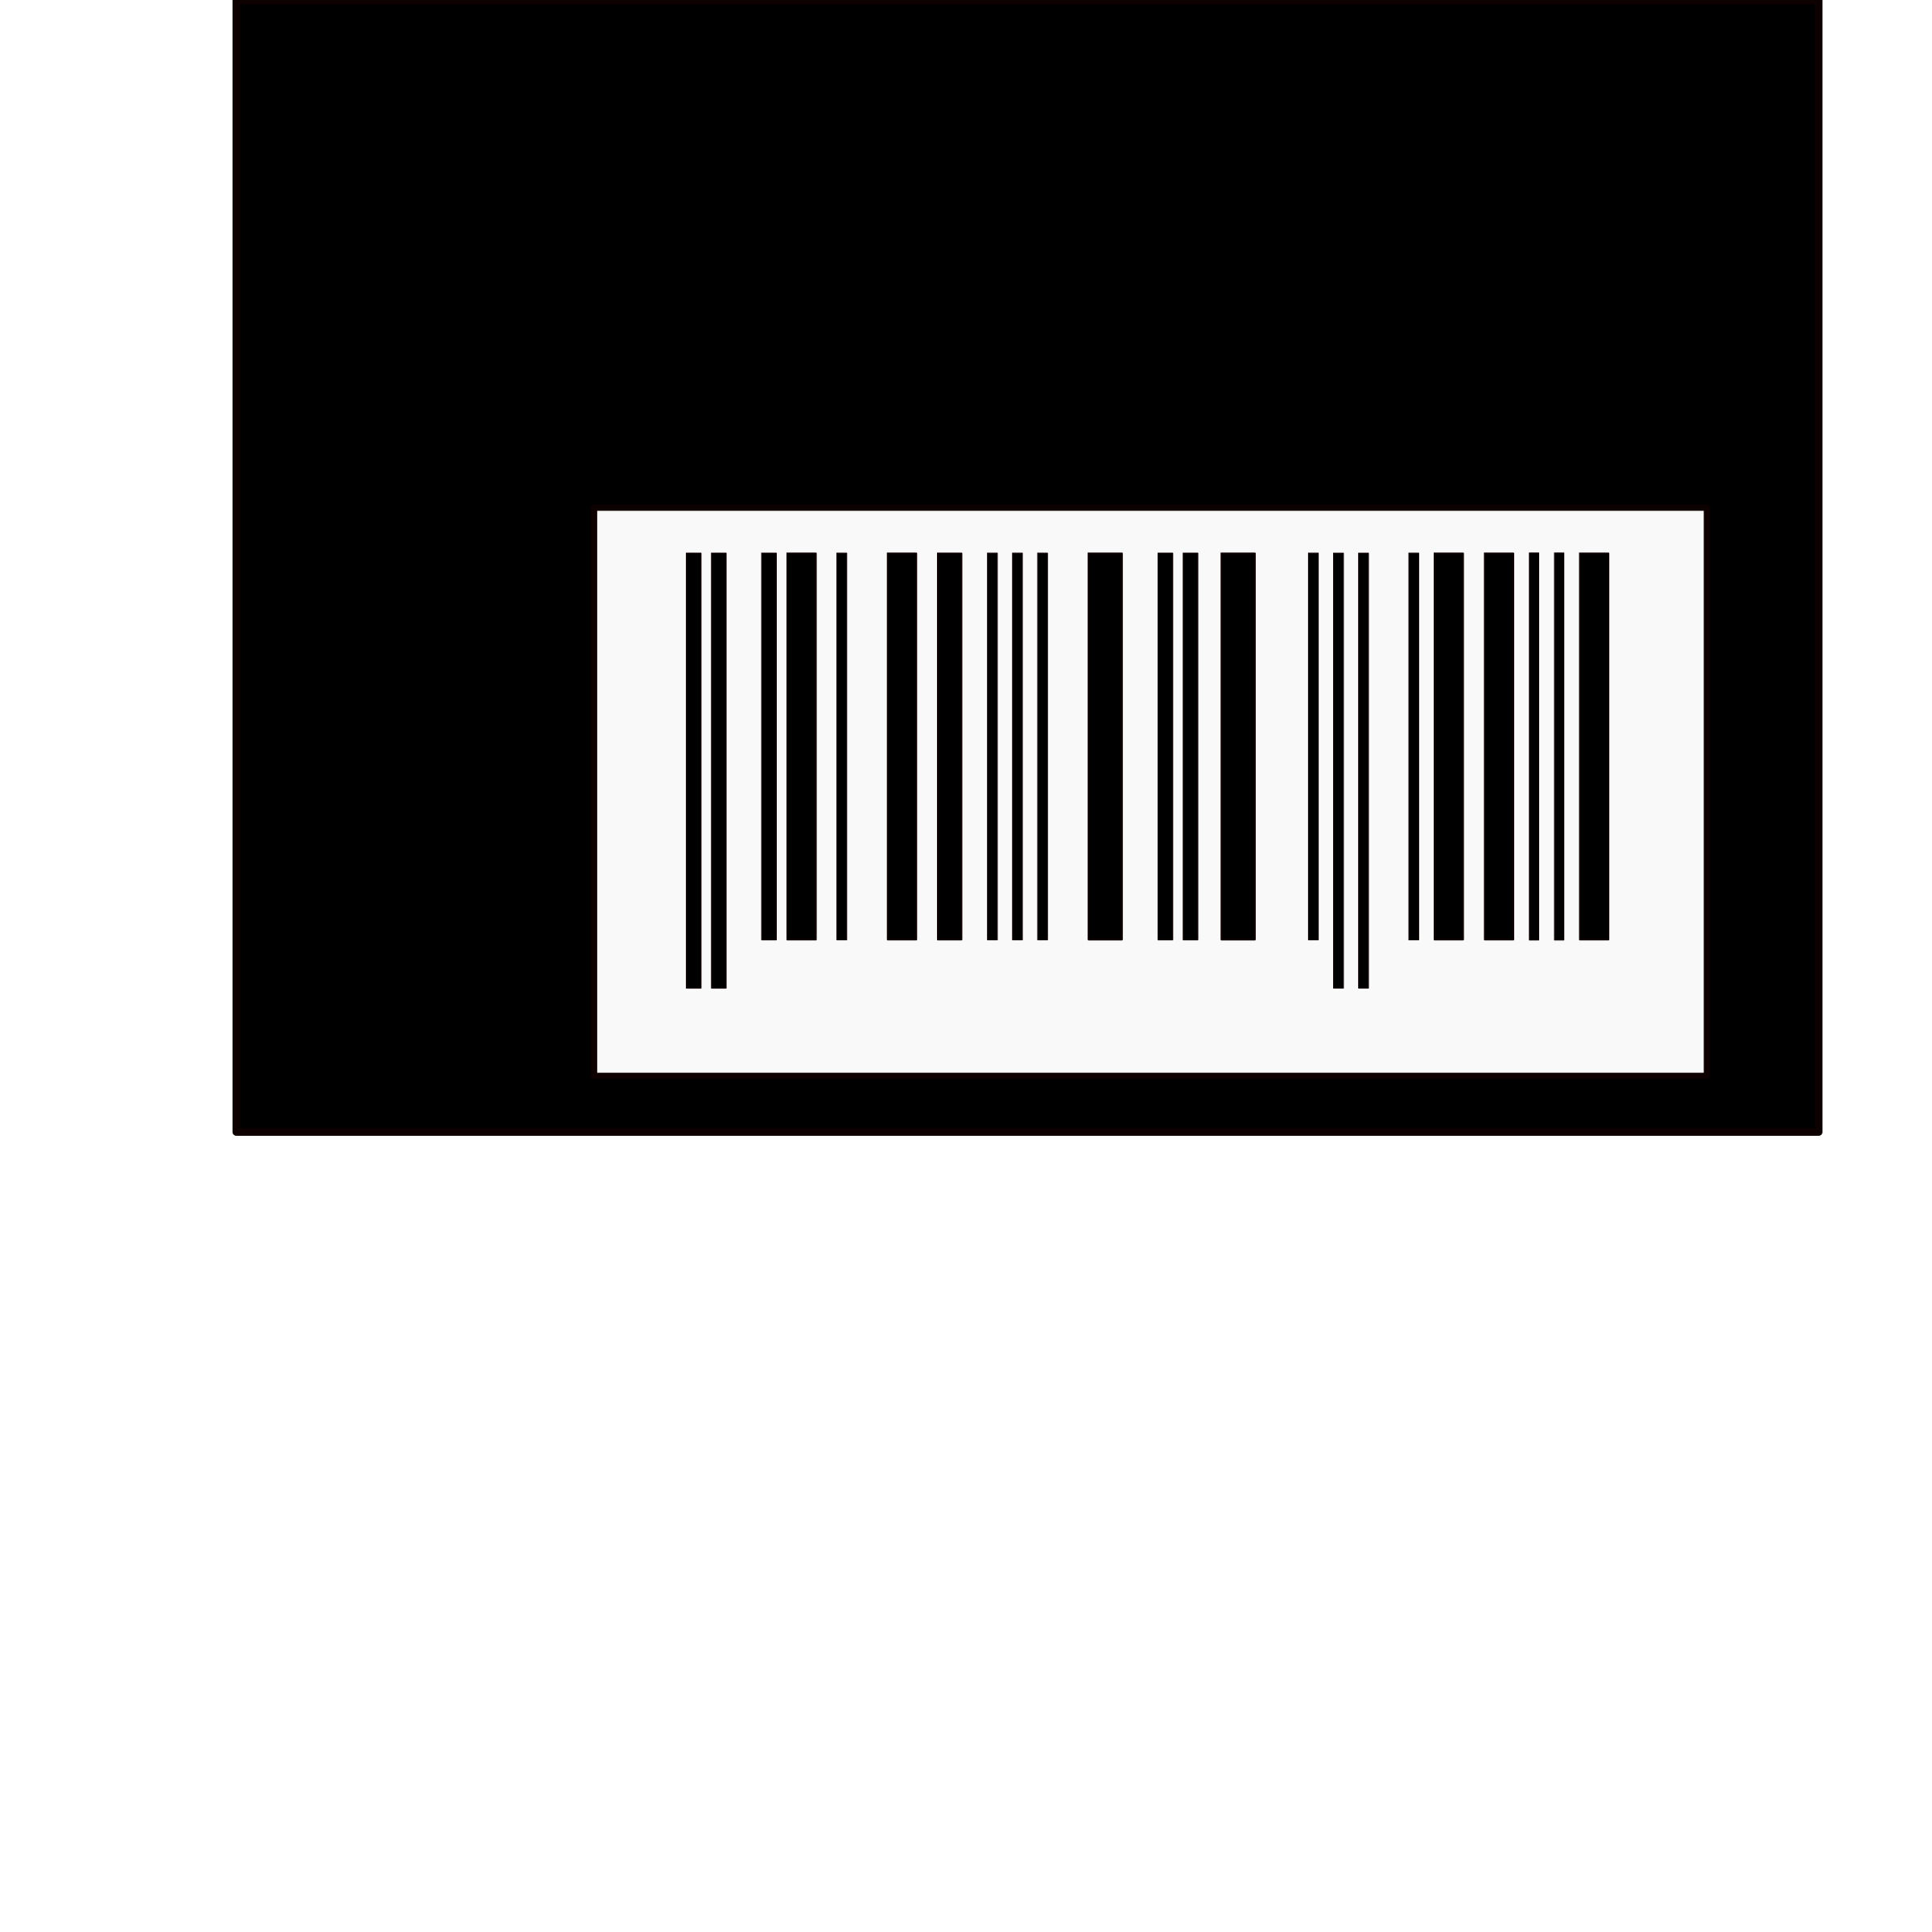 Barcode svg video game